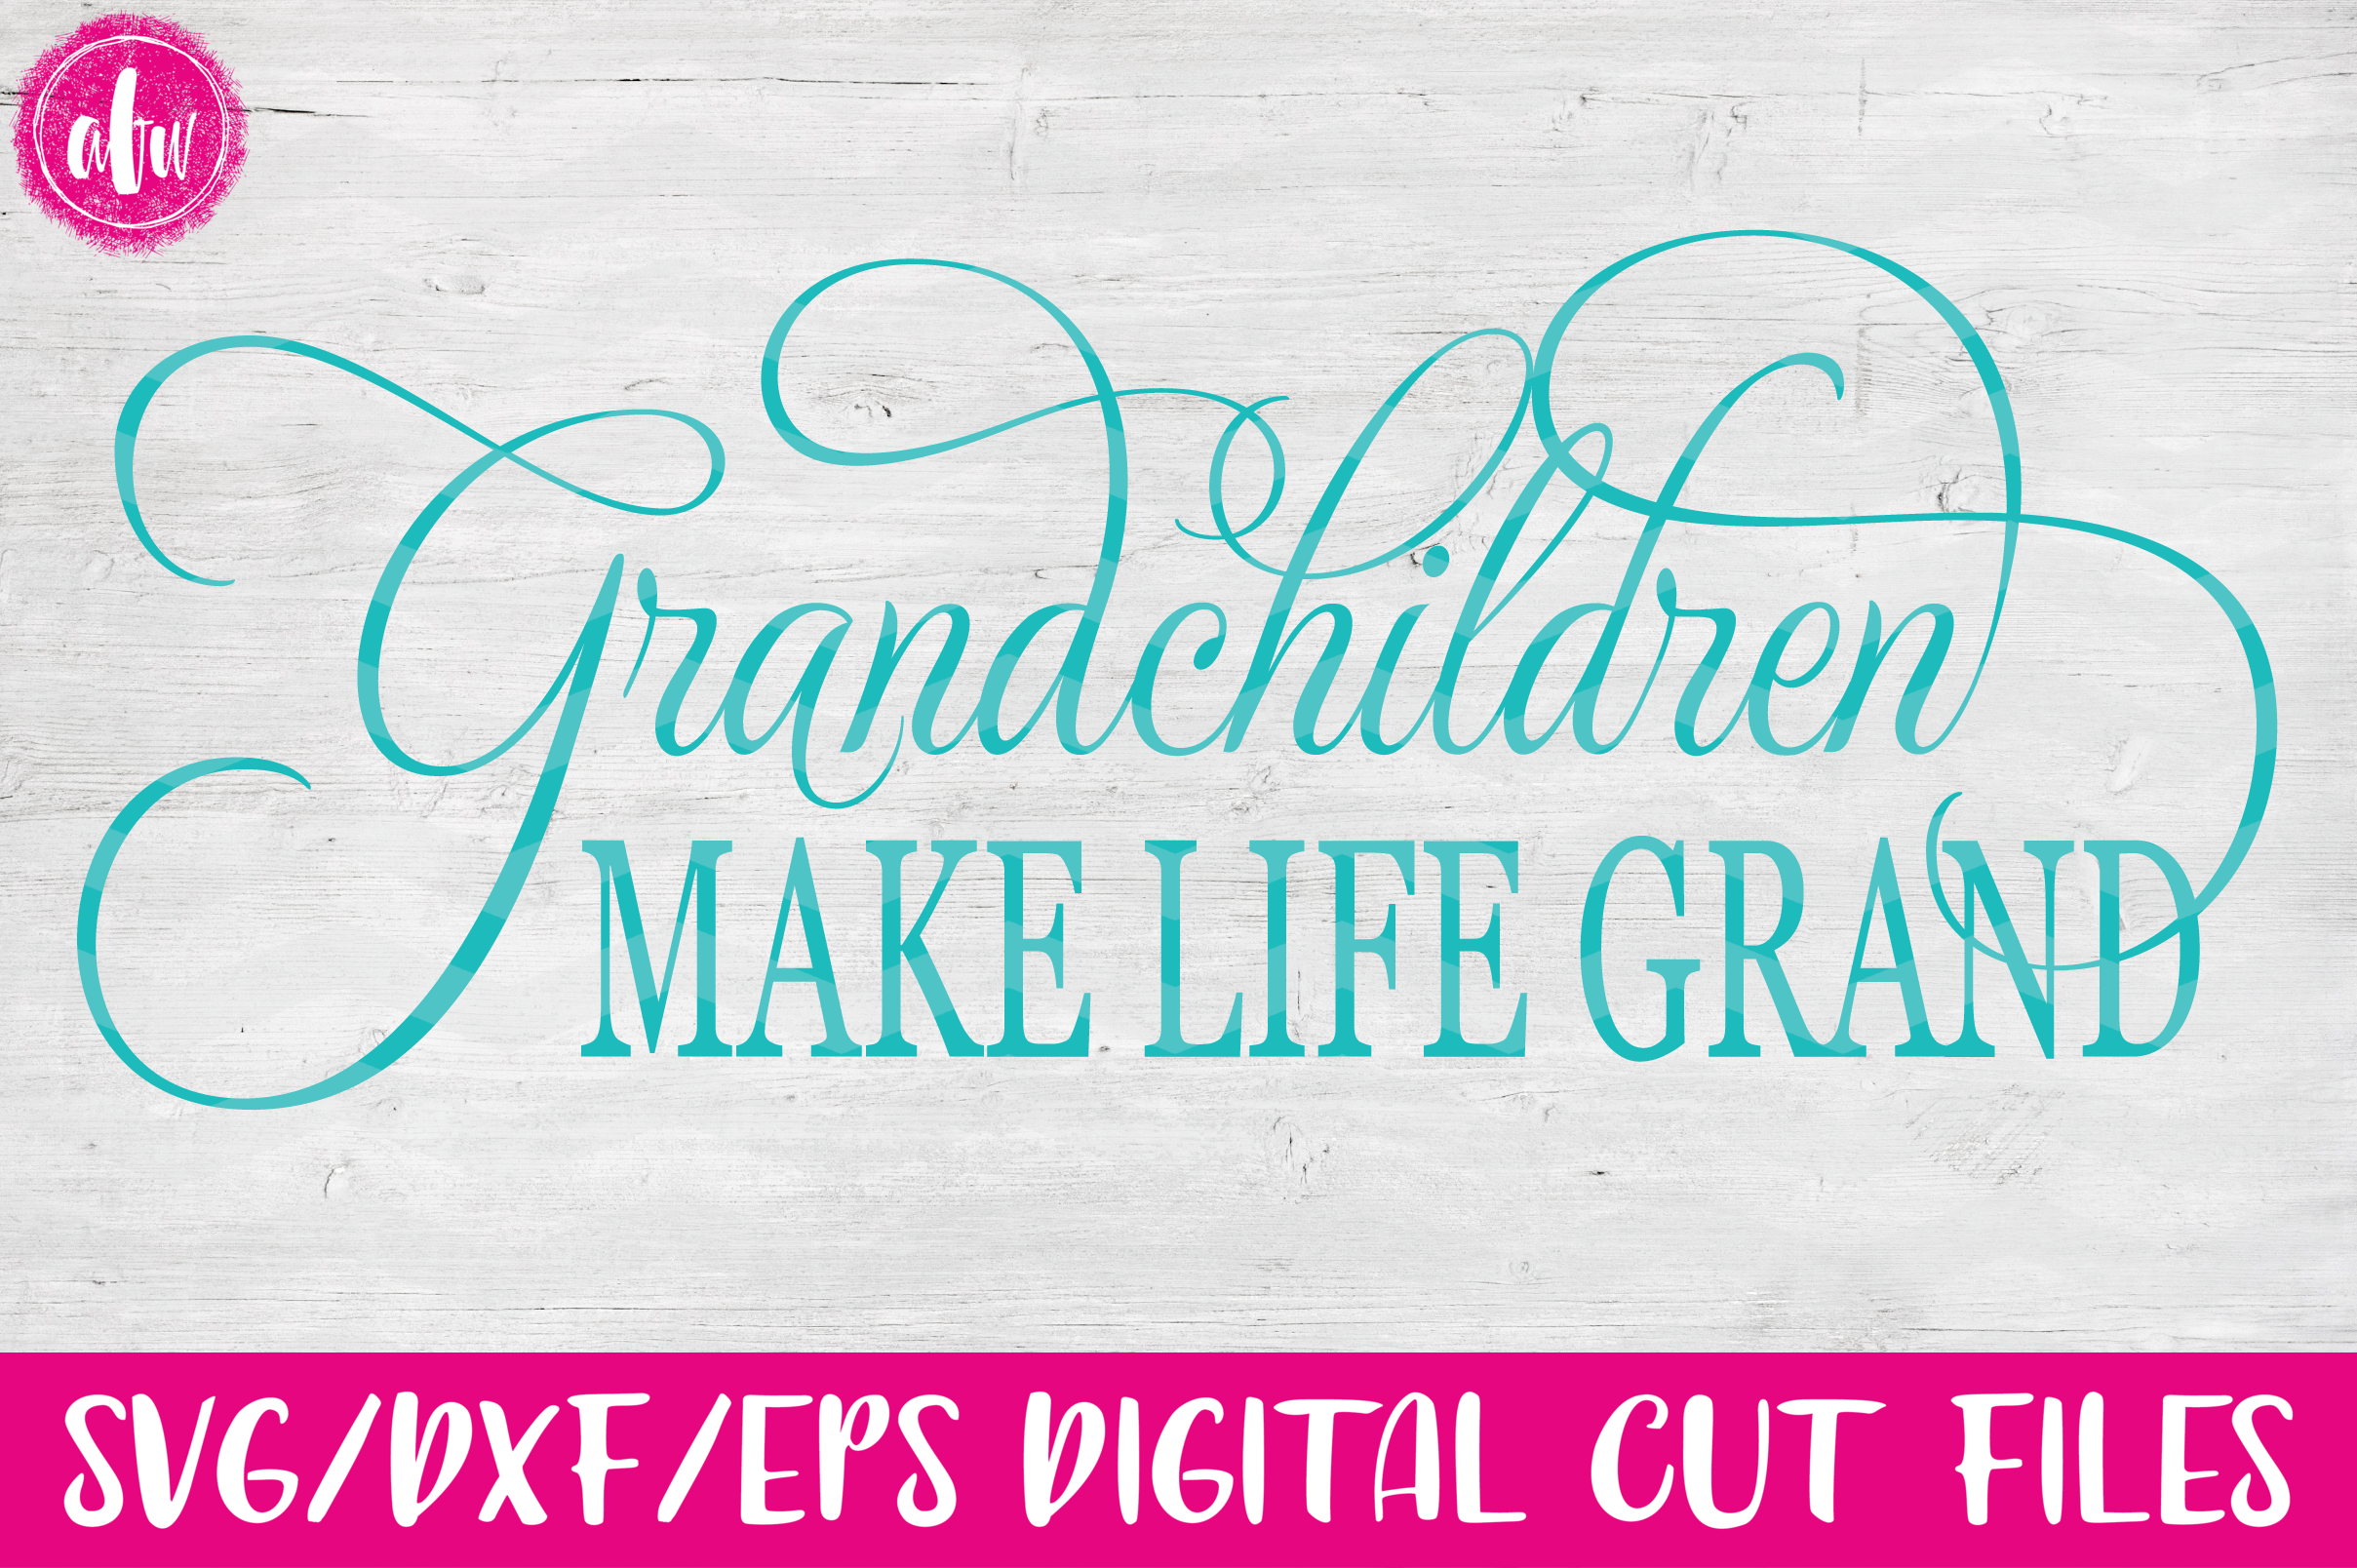 Grandchildren Make Life Grand - SVG, DXF, EPS Cut File example image 1